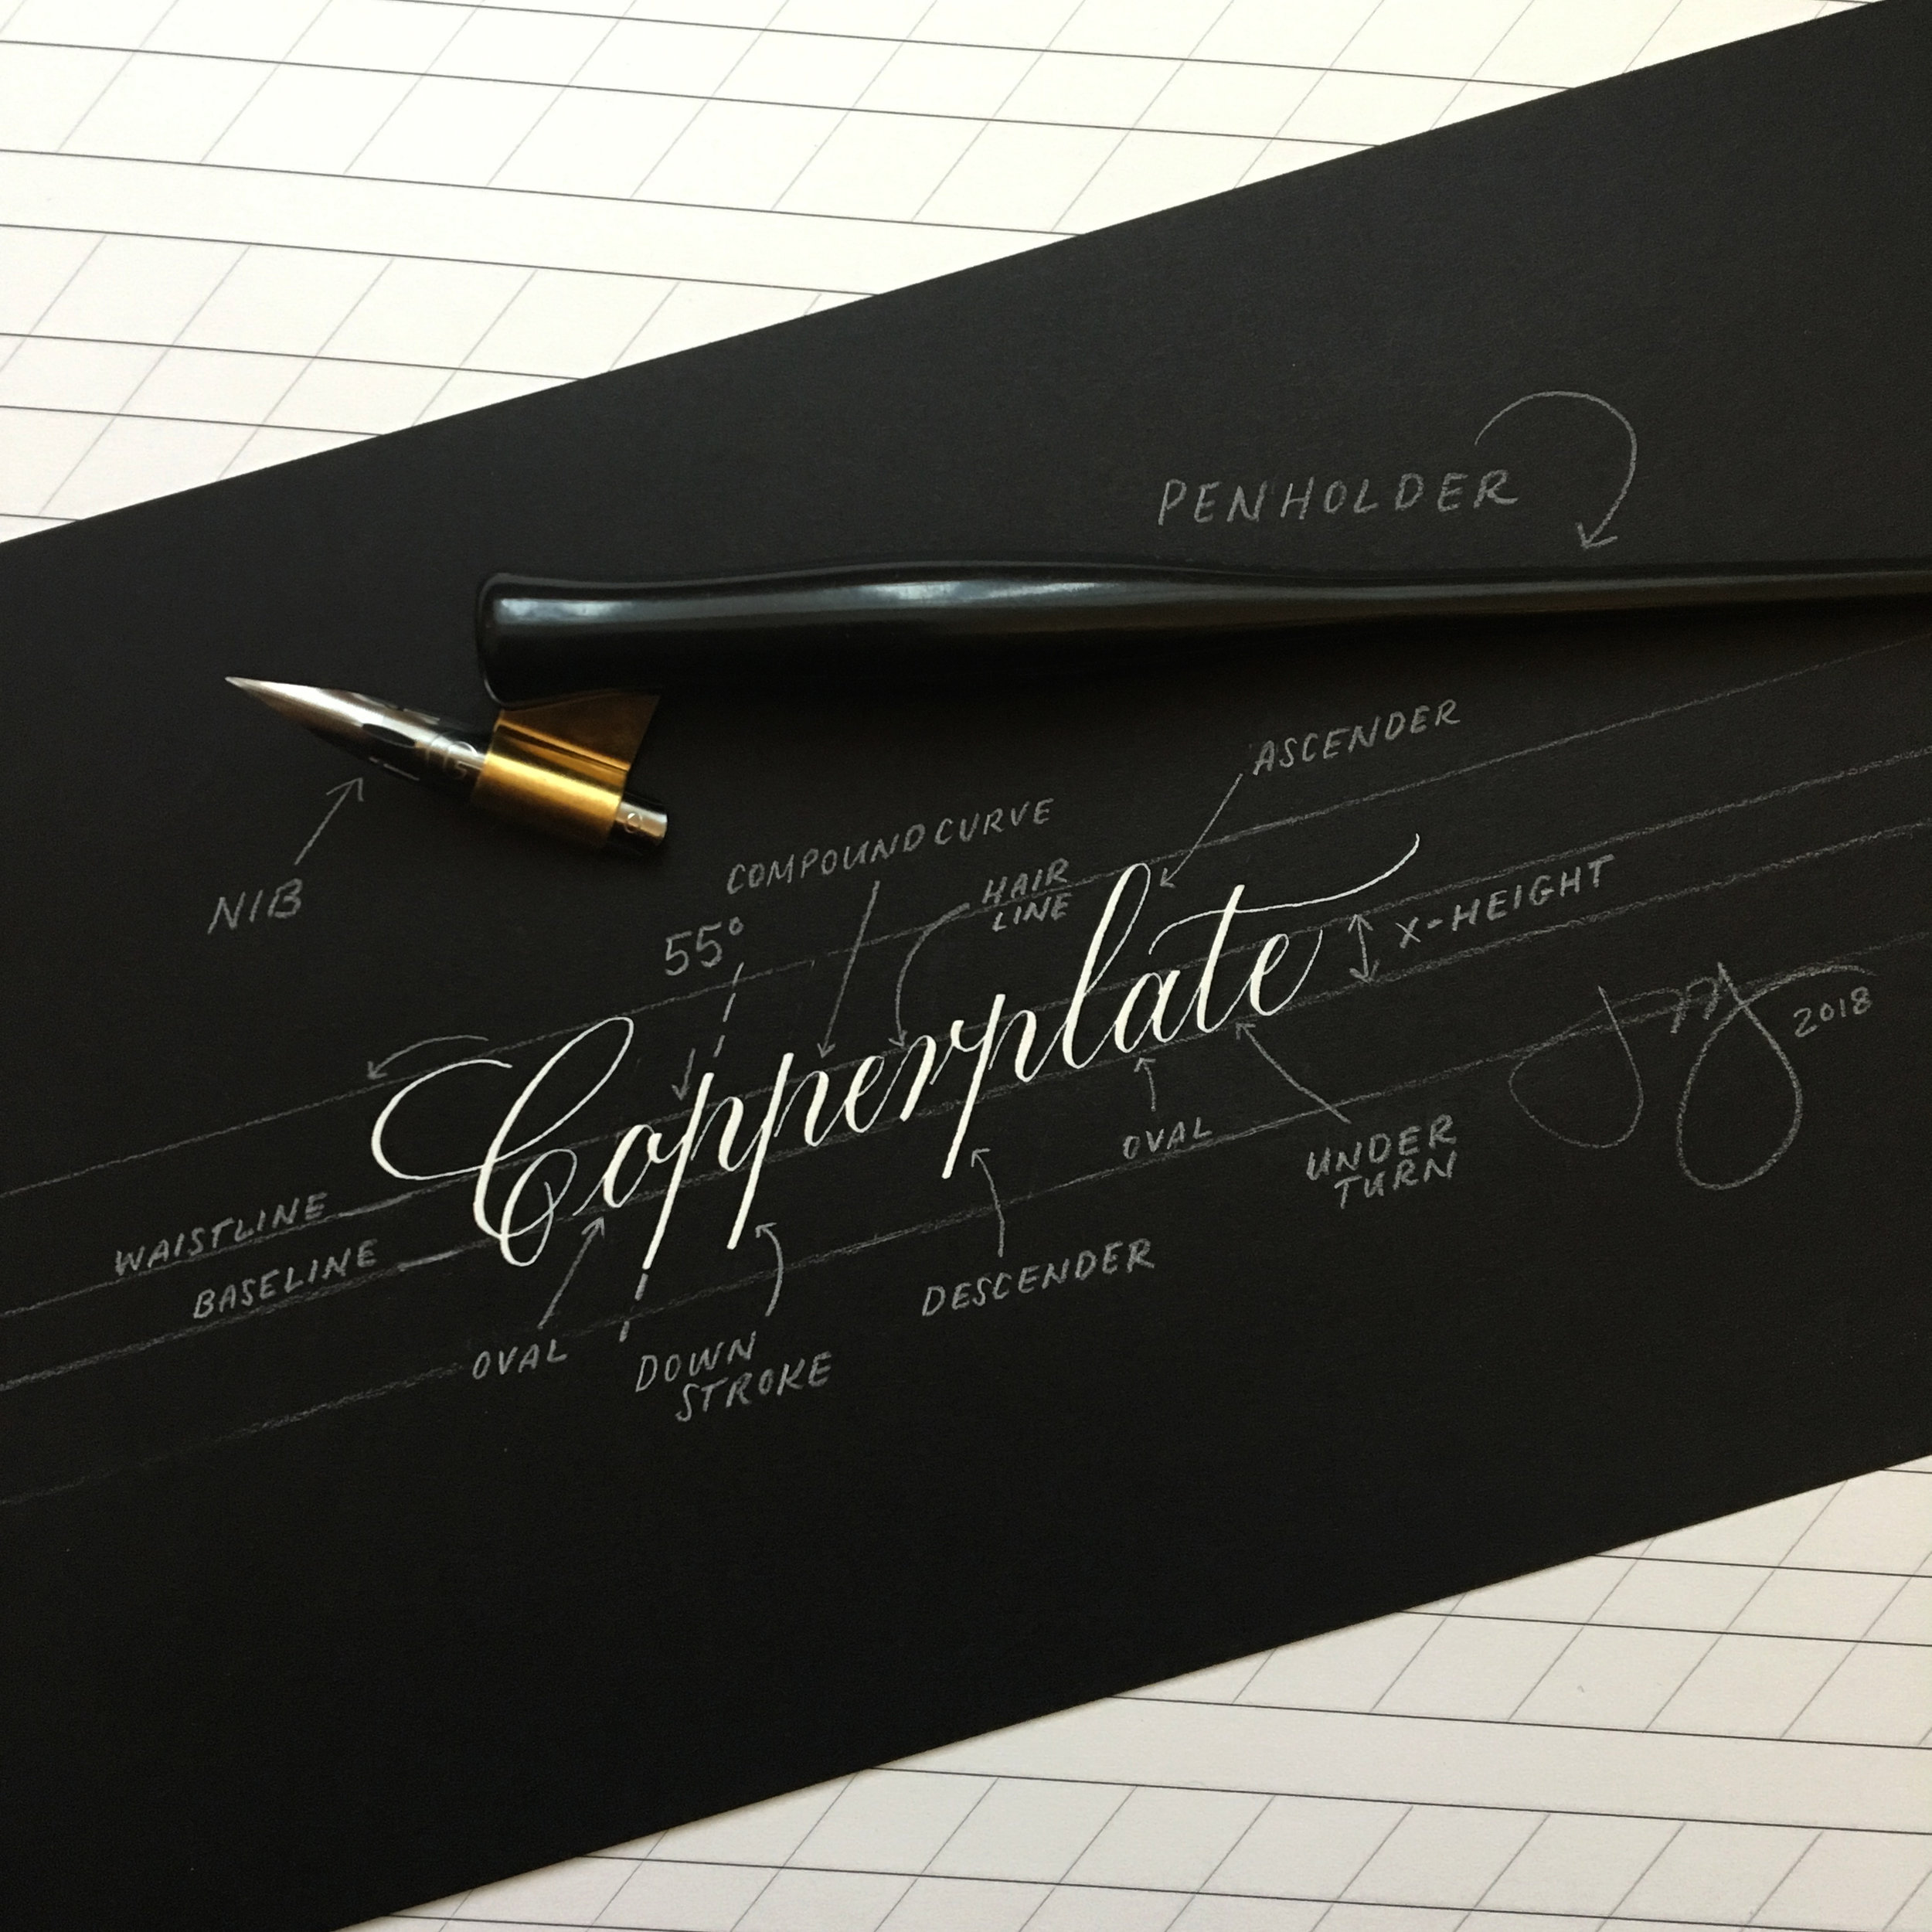 Copperplate Workshop (Atelier Imagine Joy).jpg